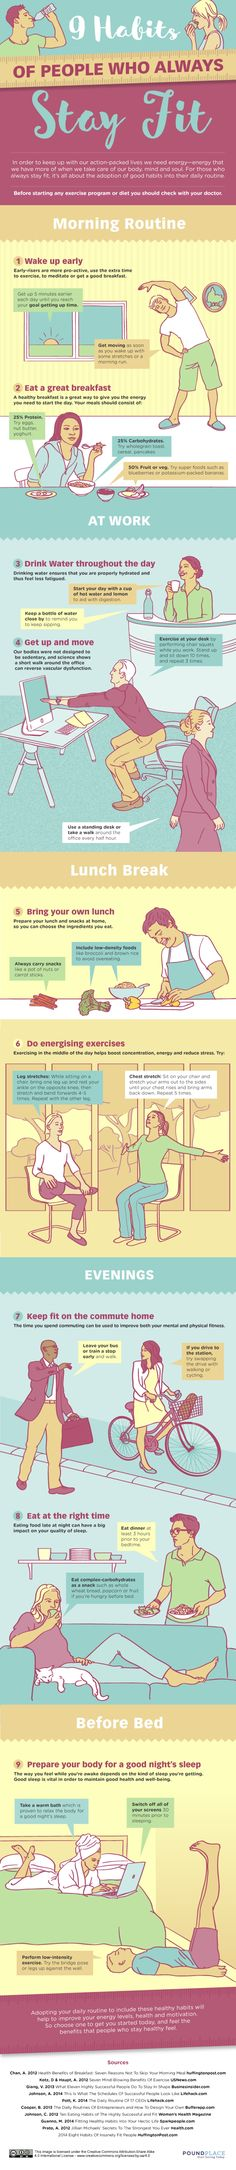 Exercise and eating healthy are key to a healthier, fitter lifestyle, but there\u2019s something to be said for small changes as well\u2014ones that can make a big difference if you make them into regular habits. This graphic is packed with them, starting from when you wake up in the morning to how you wind down for bed at night. #weightlosstips